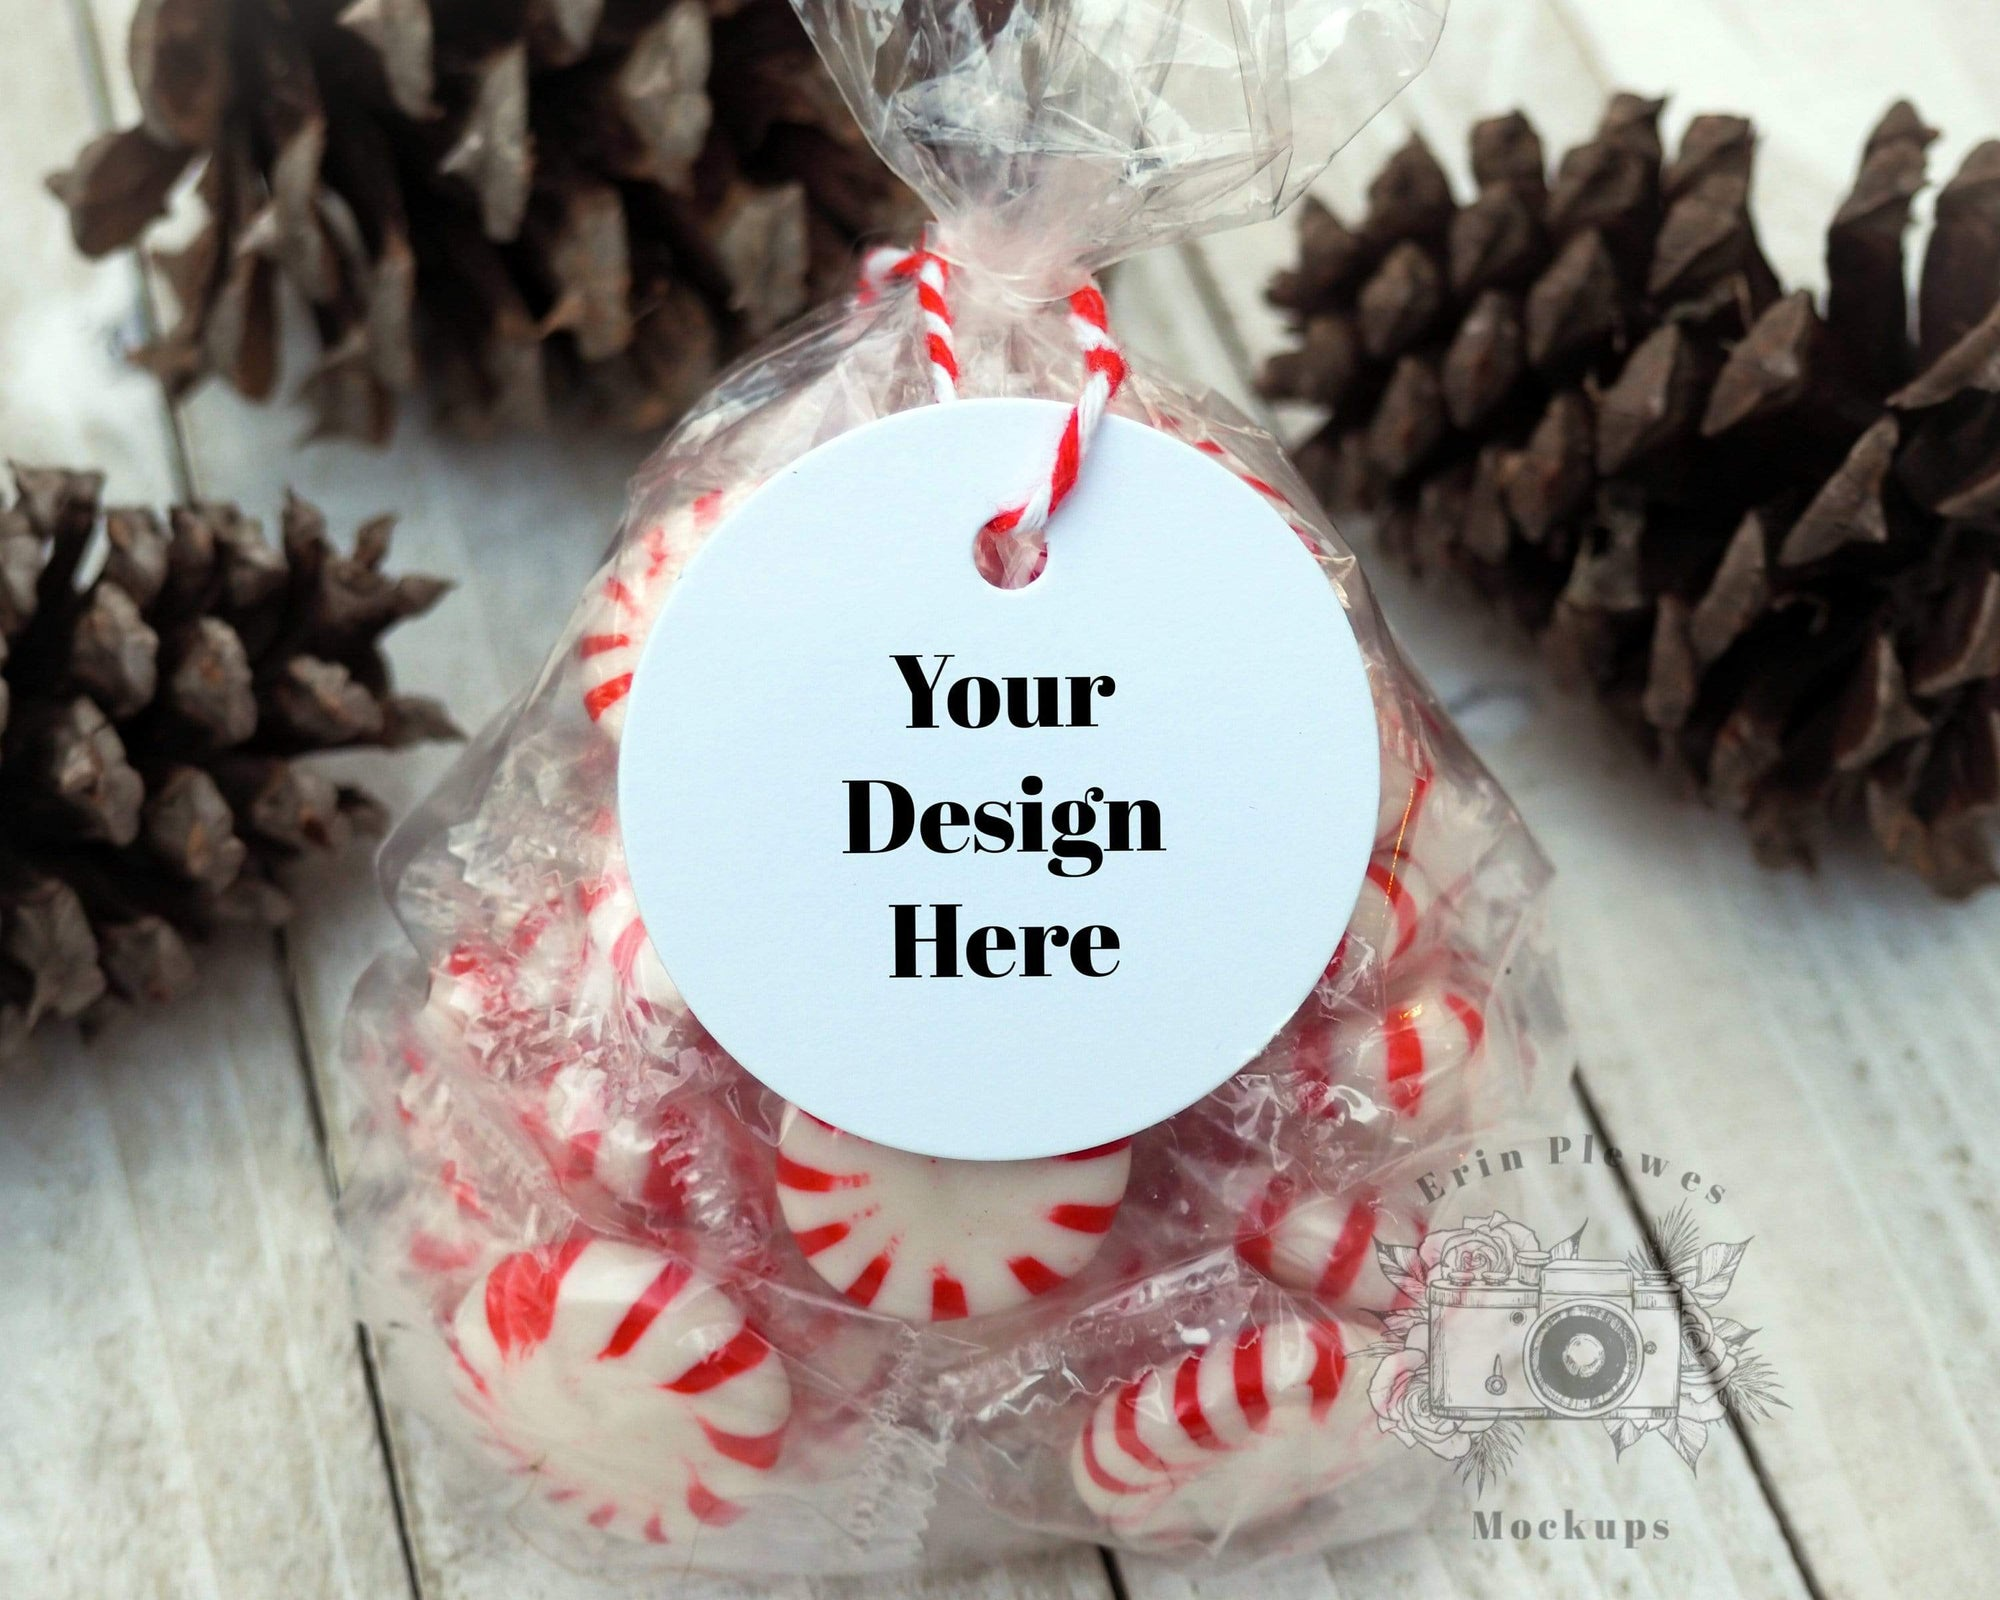 Erin Plewes Mockups Christmas gift tag mockup, Gift bag mock-up for party favor template stock photo, Jpeg instant Digital Download